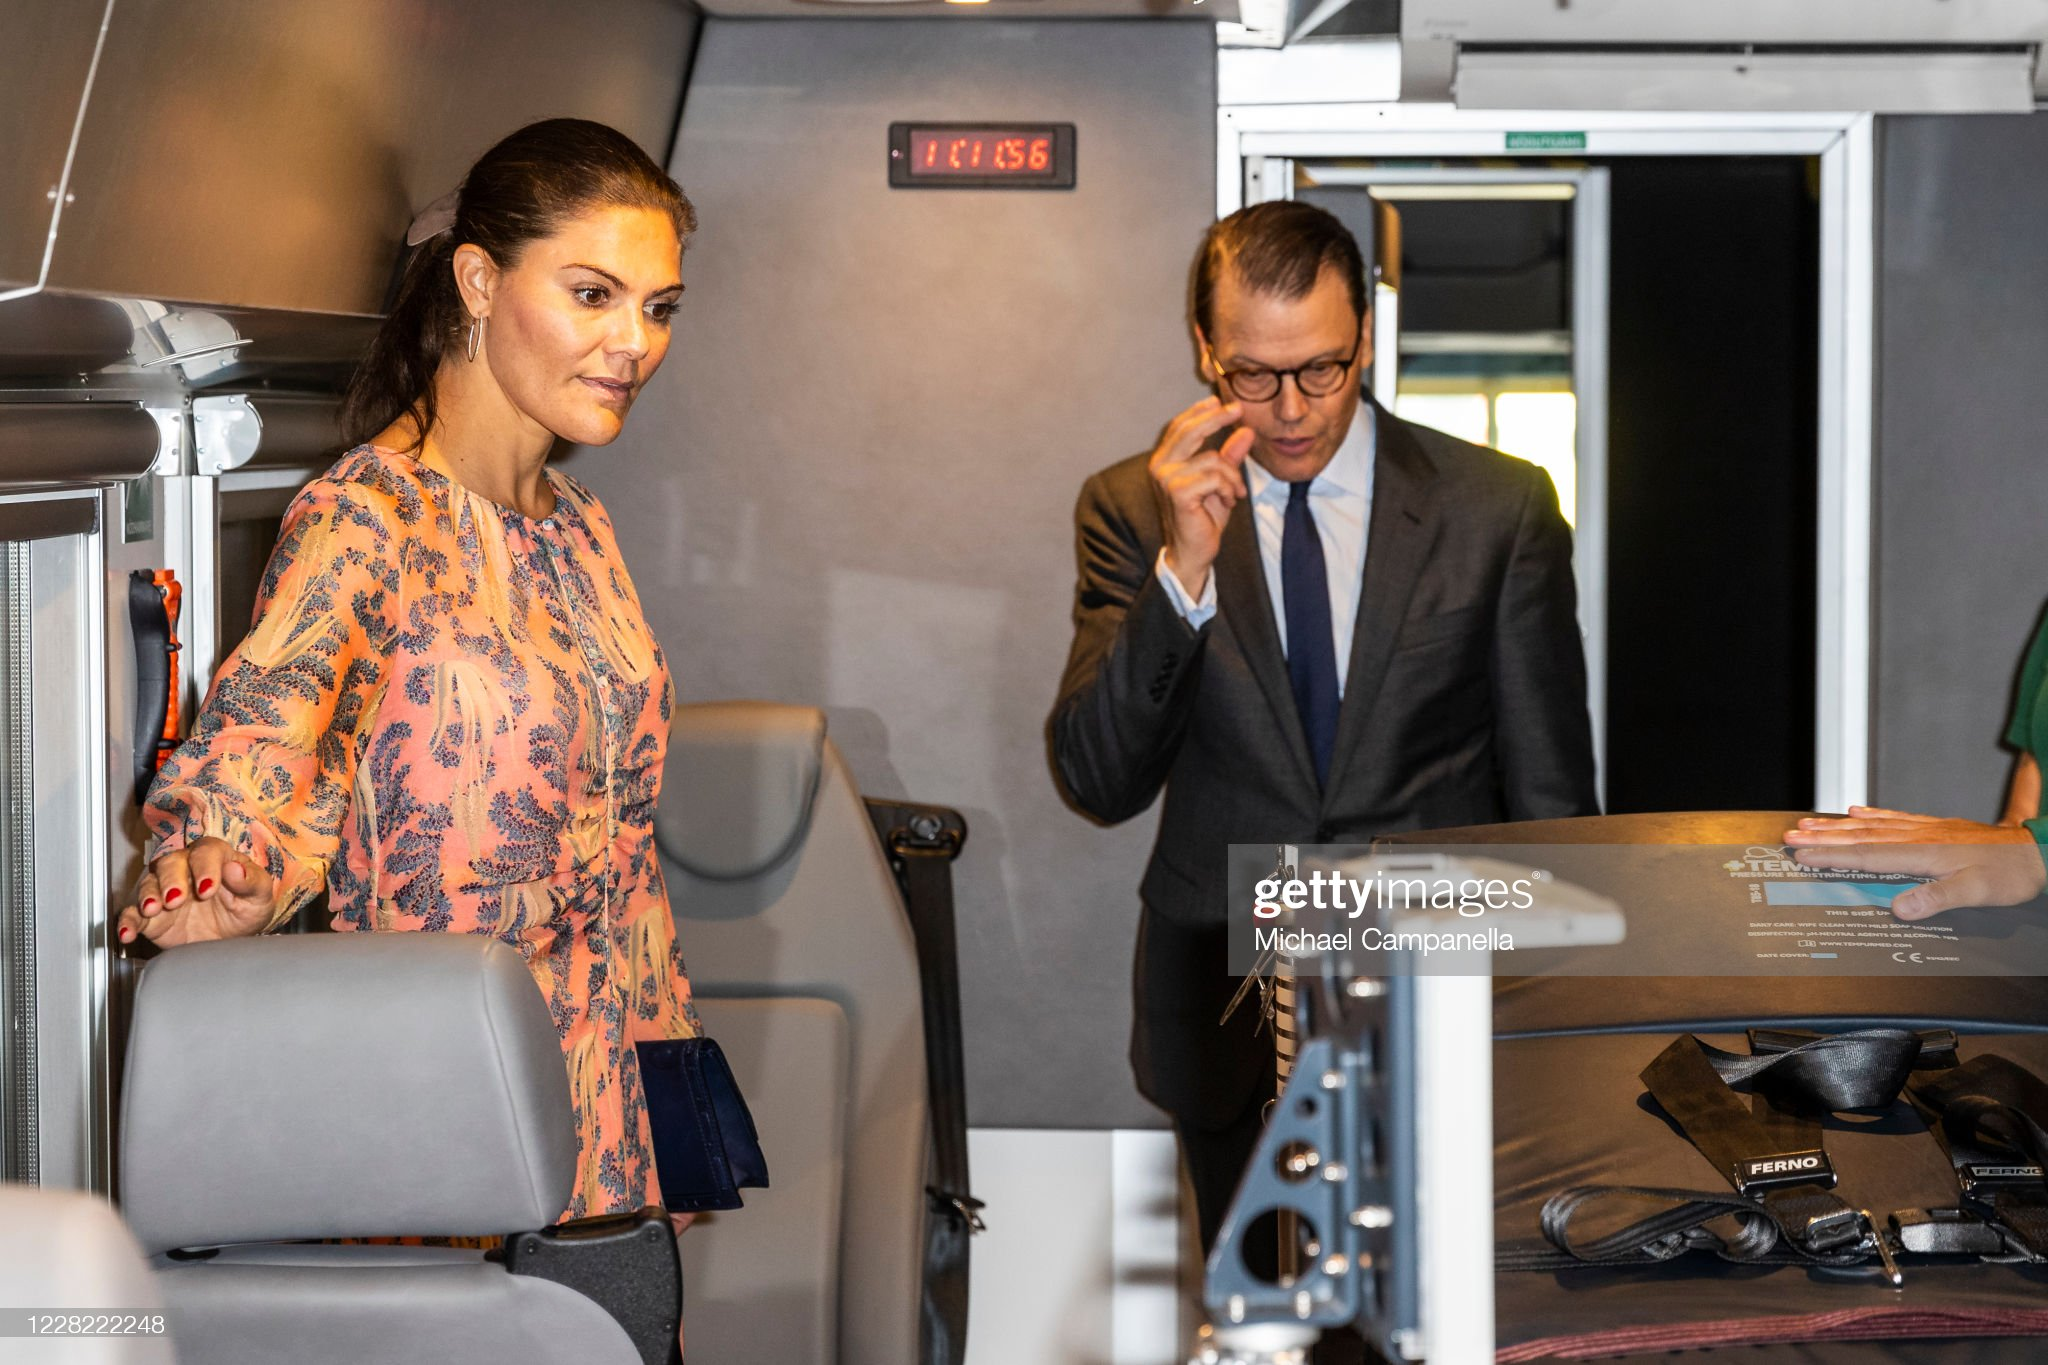 crown-princess-victoria-and-prince-daniel-of-sweden-visit-an-station-picture-id1228222248